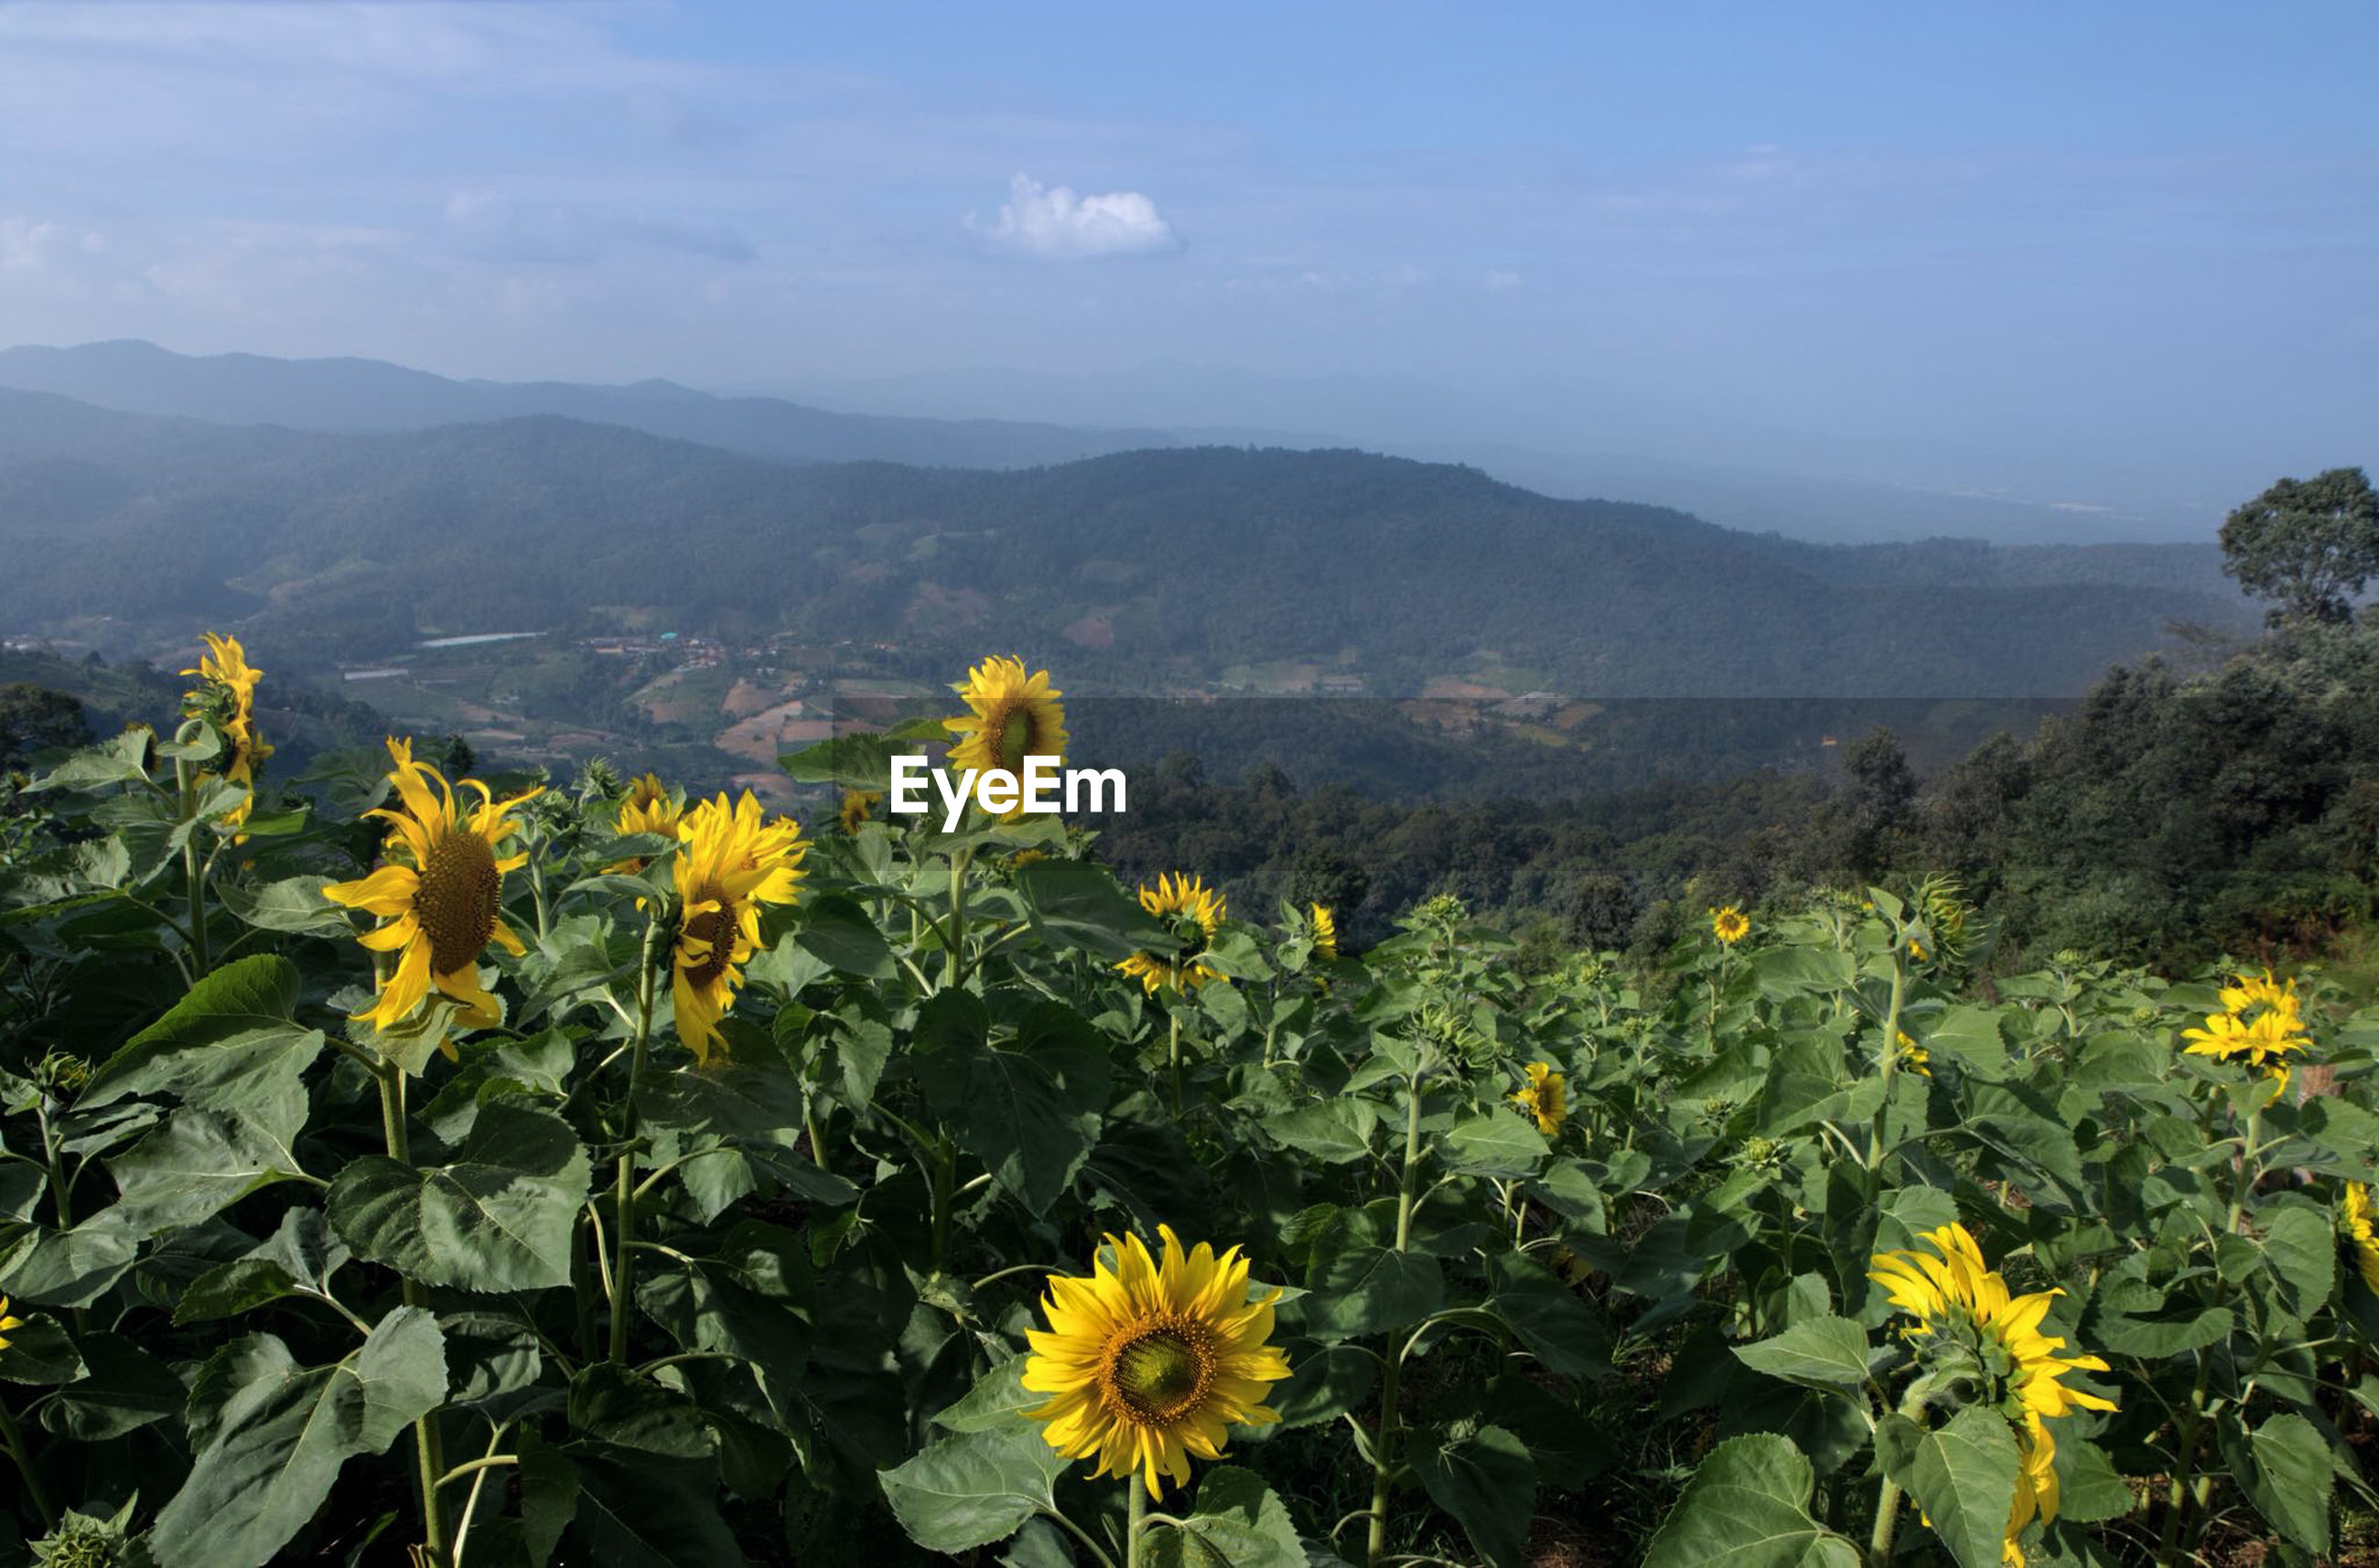 SCENIC VIEW OF SUNFLOWERS AGAINST MOUNTAIN